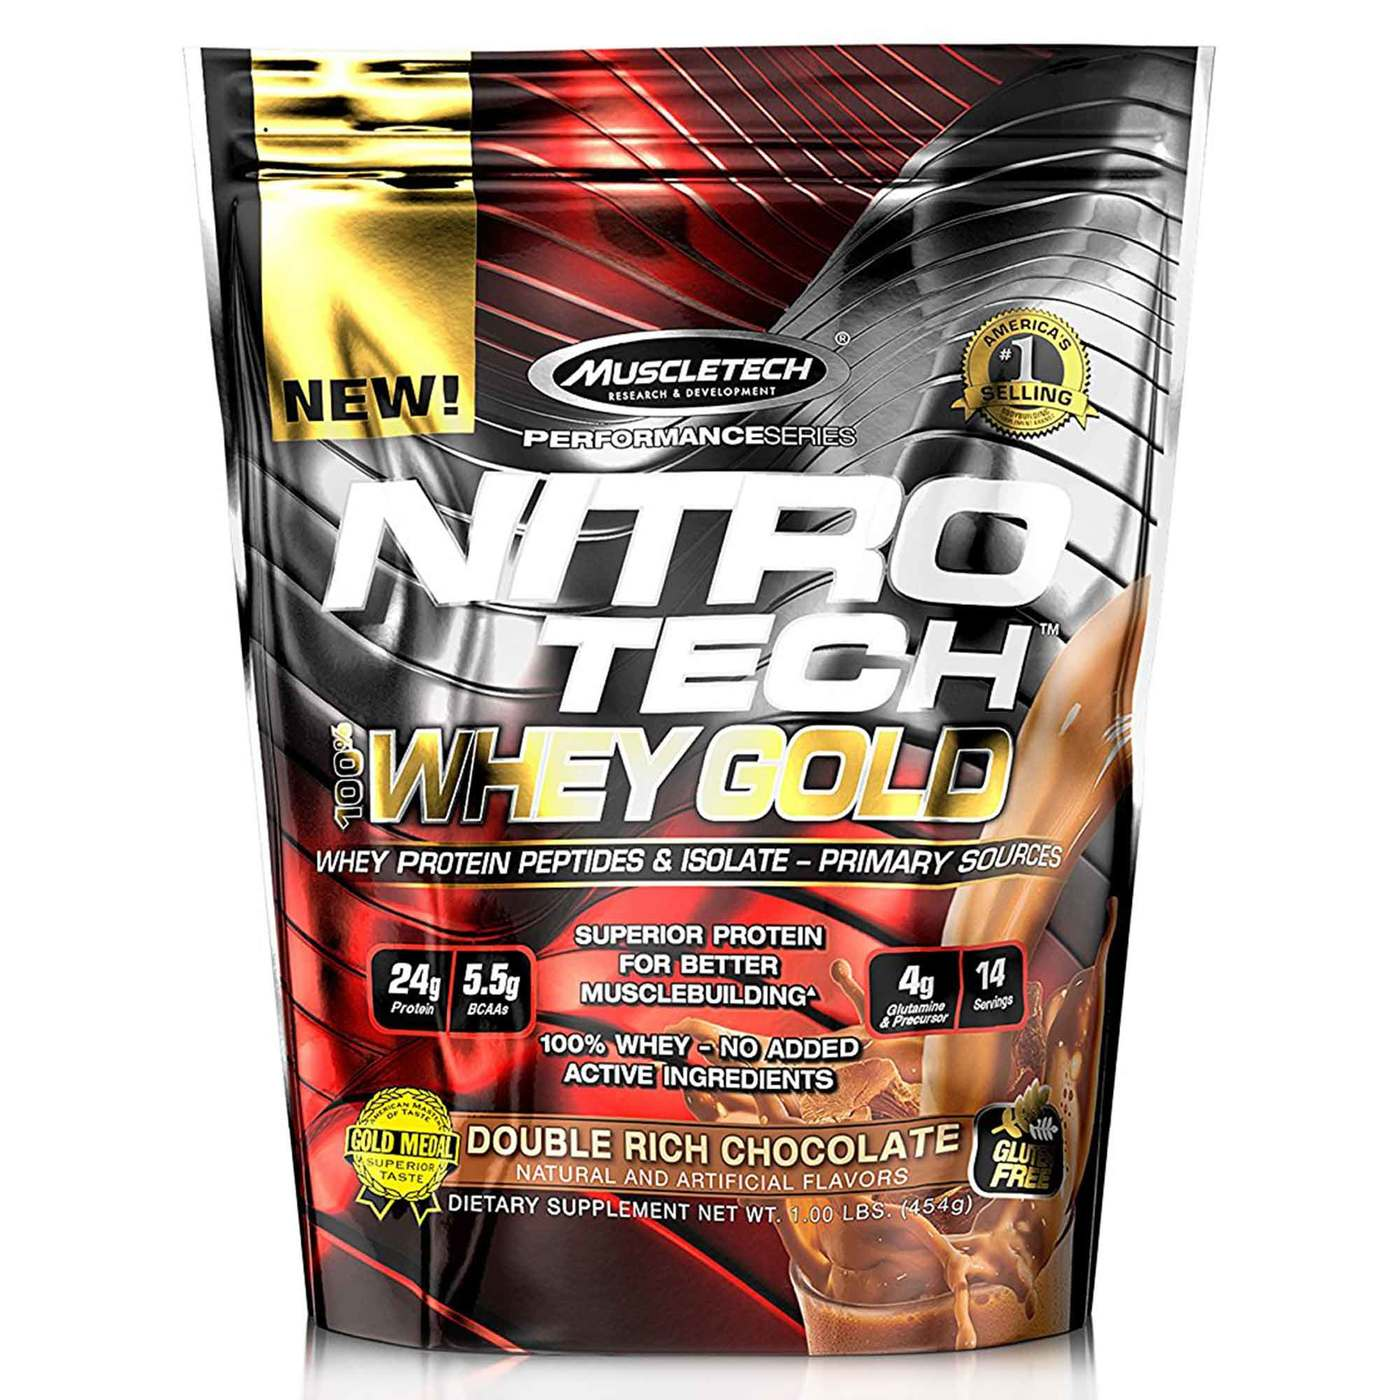 f9639d569 MuscleTech Nitro Tech 100% Whey Gold Sabor Duplo de Chocolate- 1 lb  454g